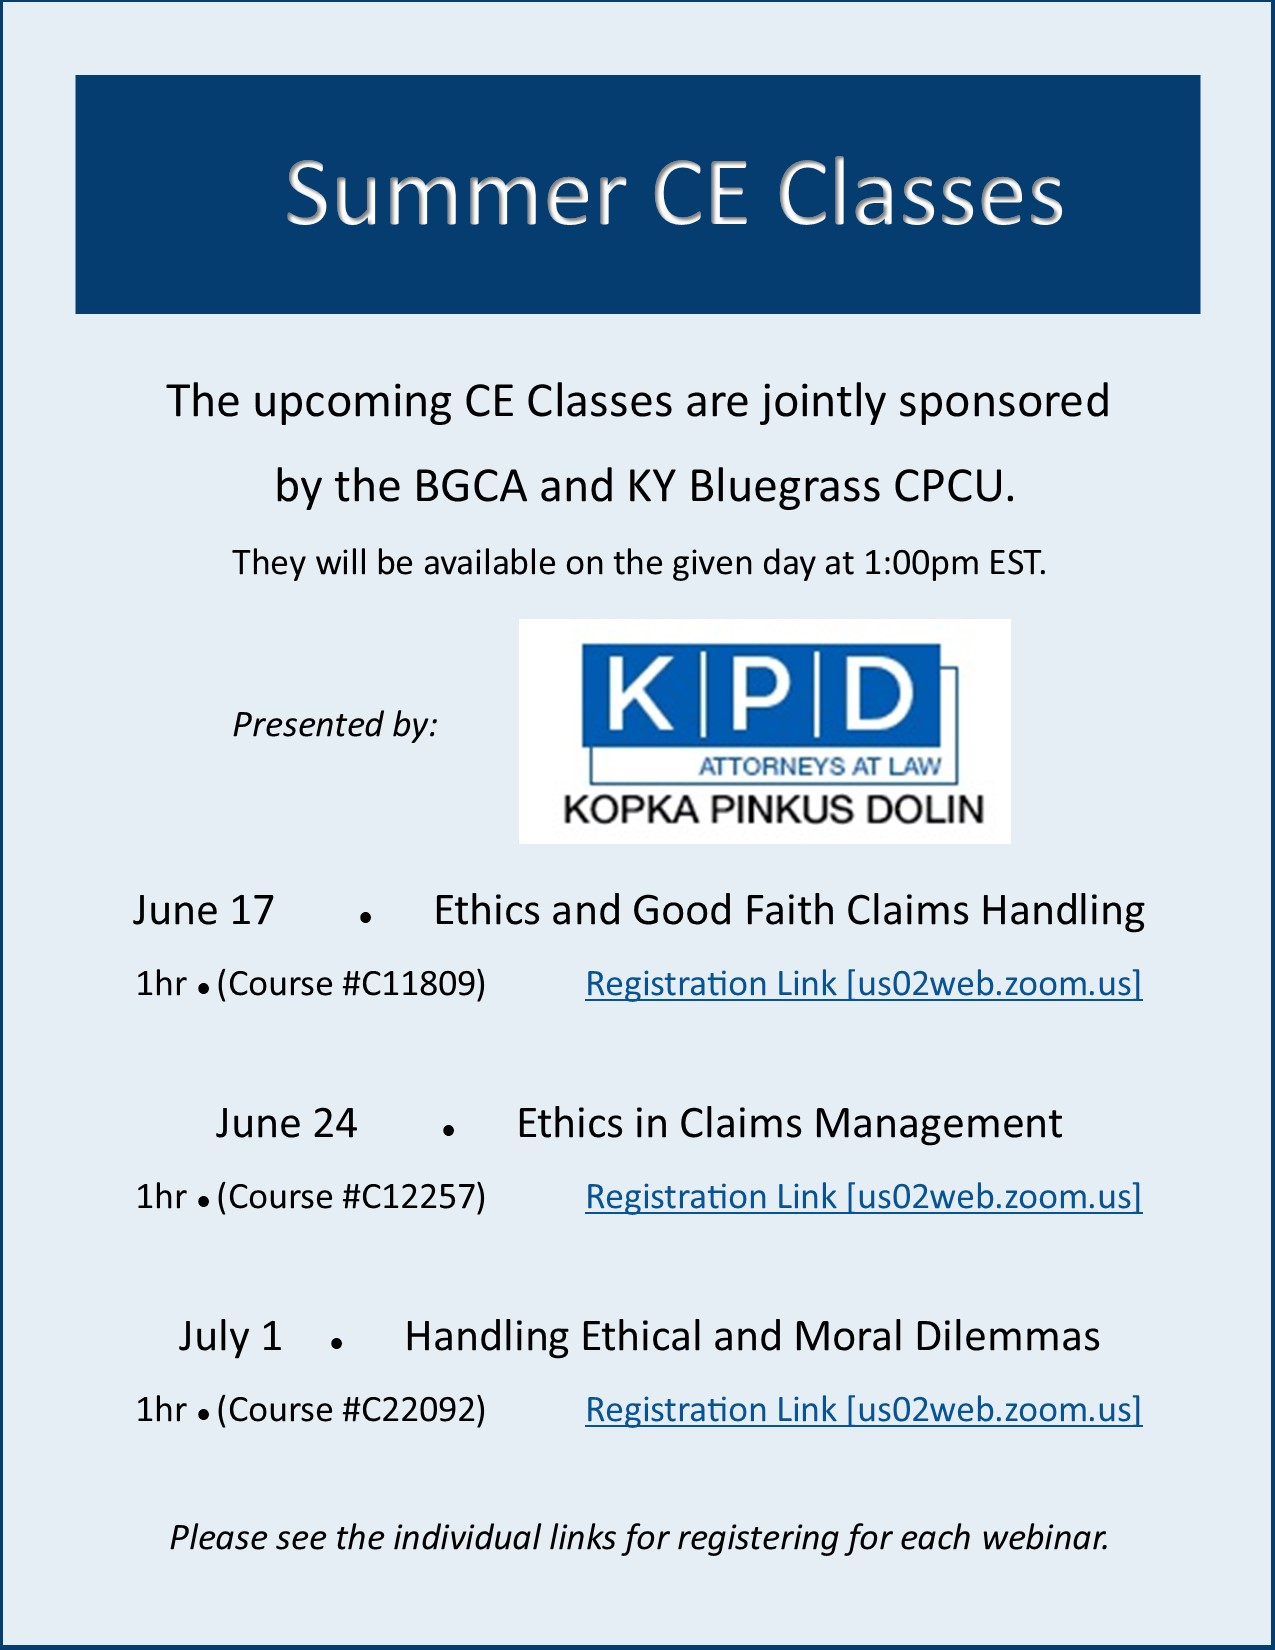 Summer CE Classes Flyer